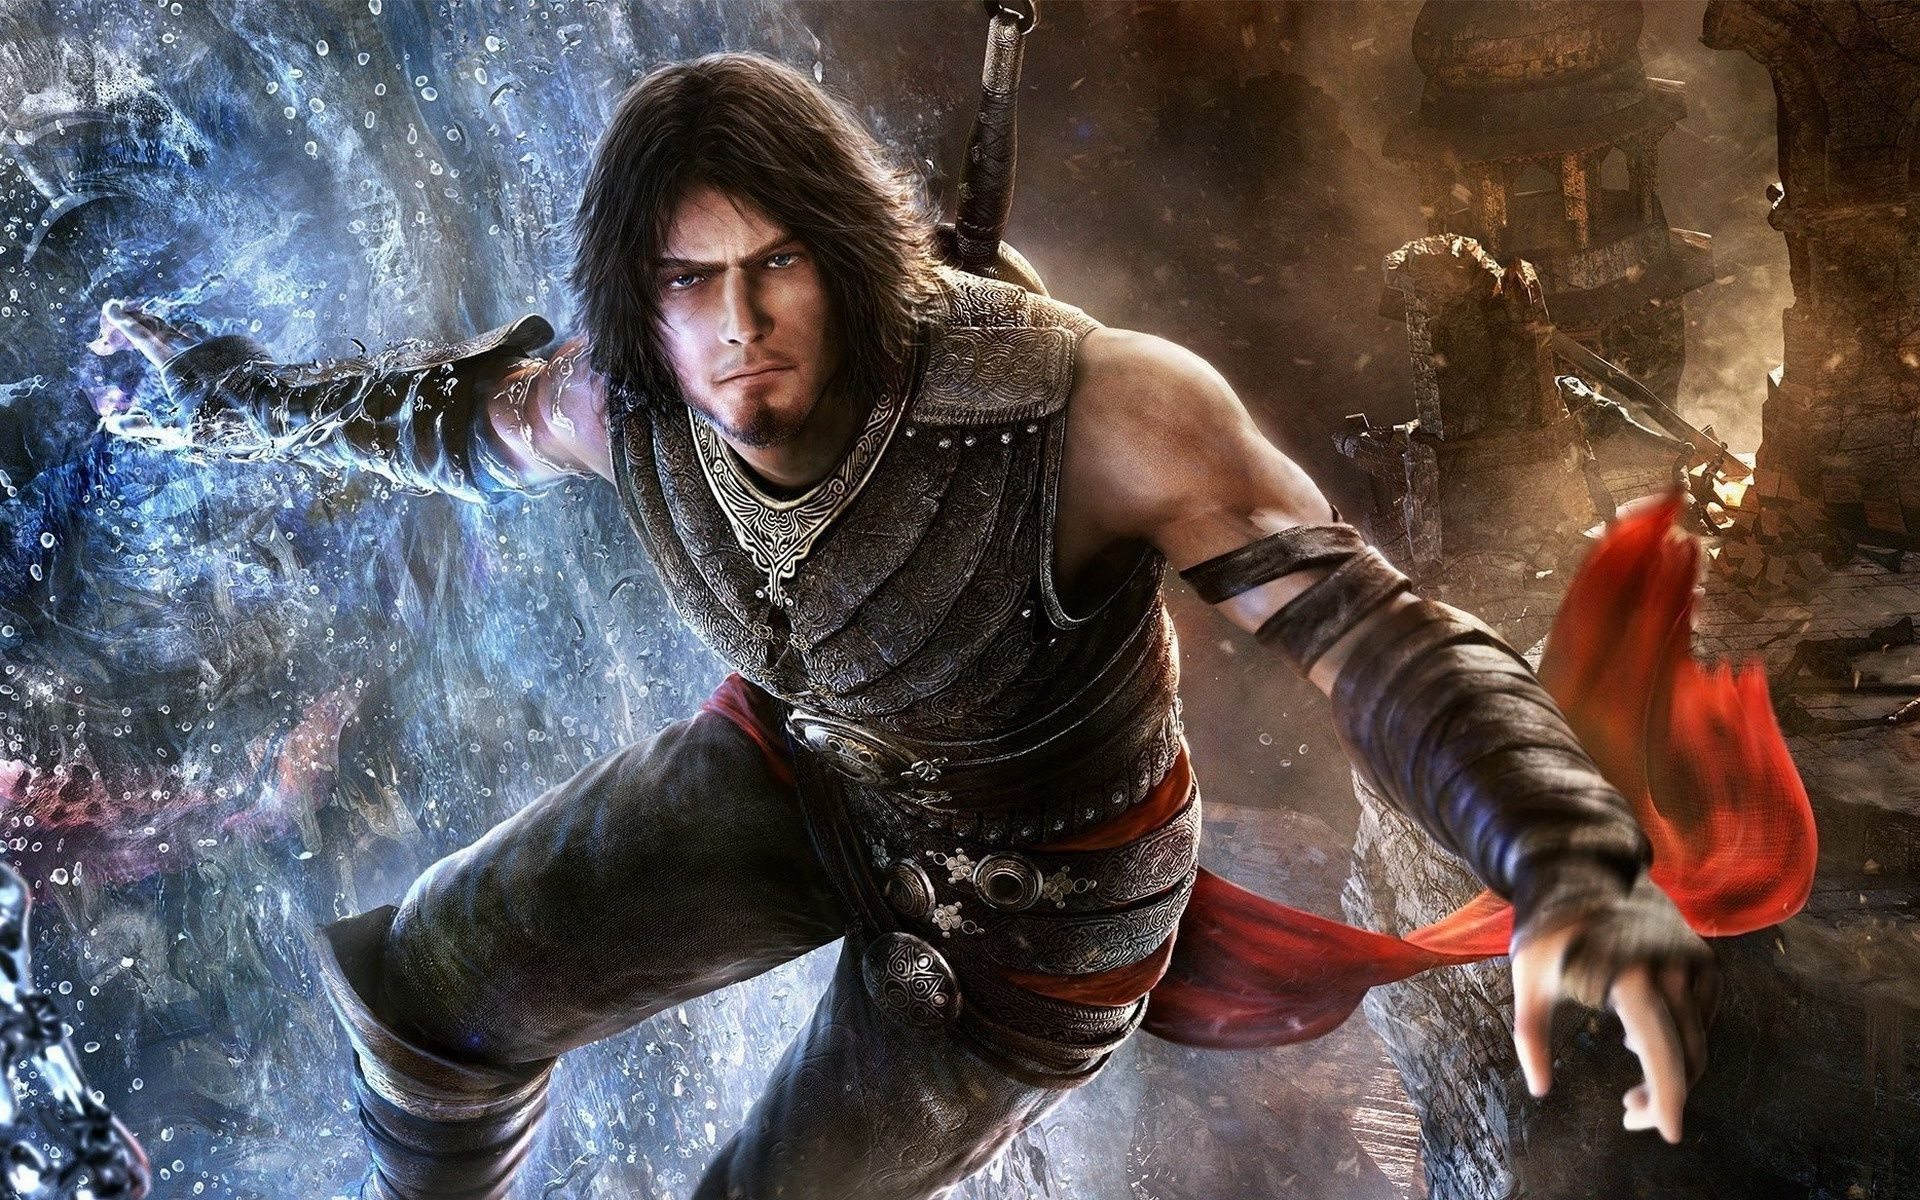 Prince Of Persia Warrior Within Wallpaper (57+ Images